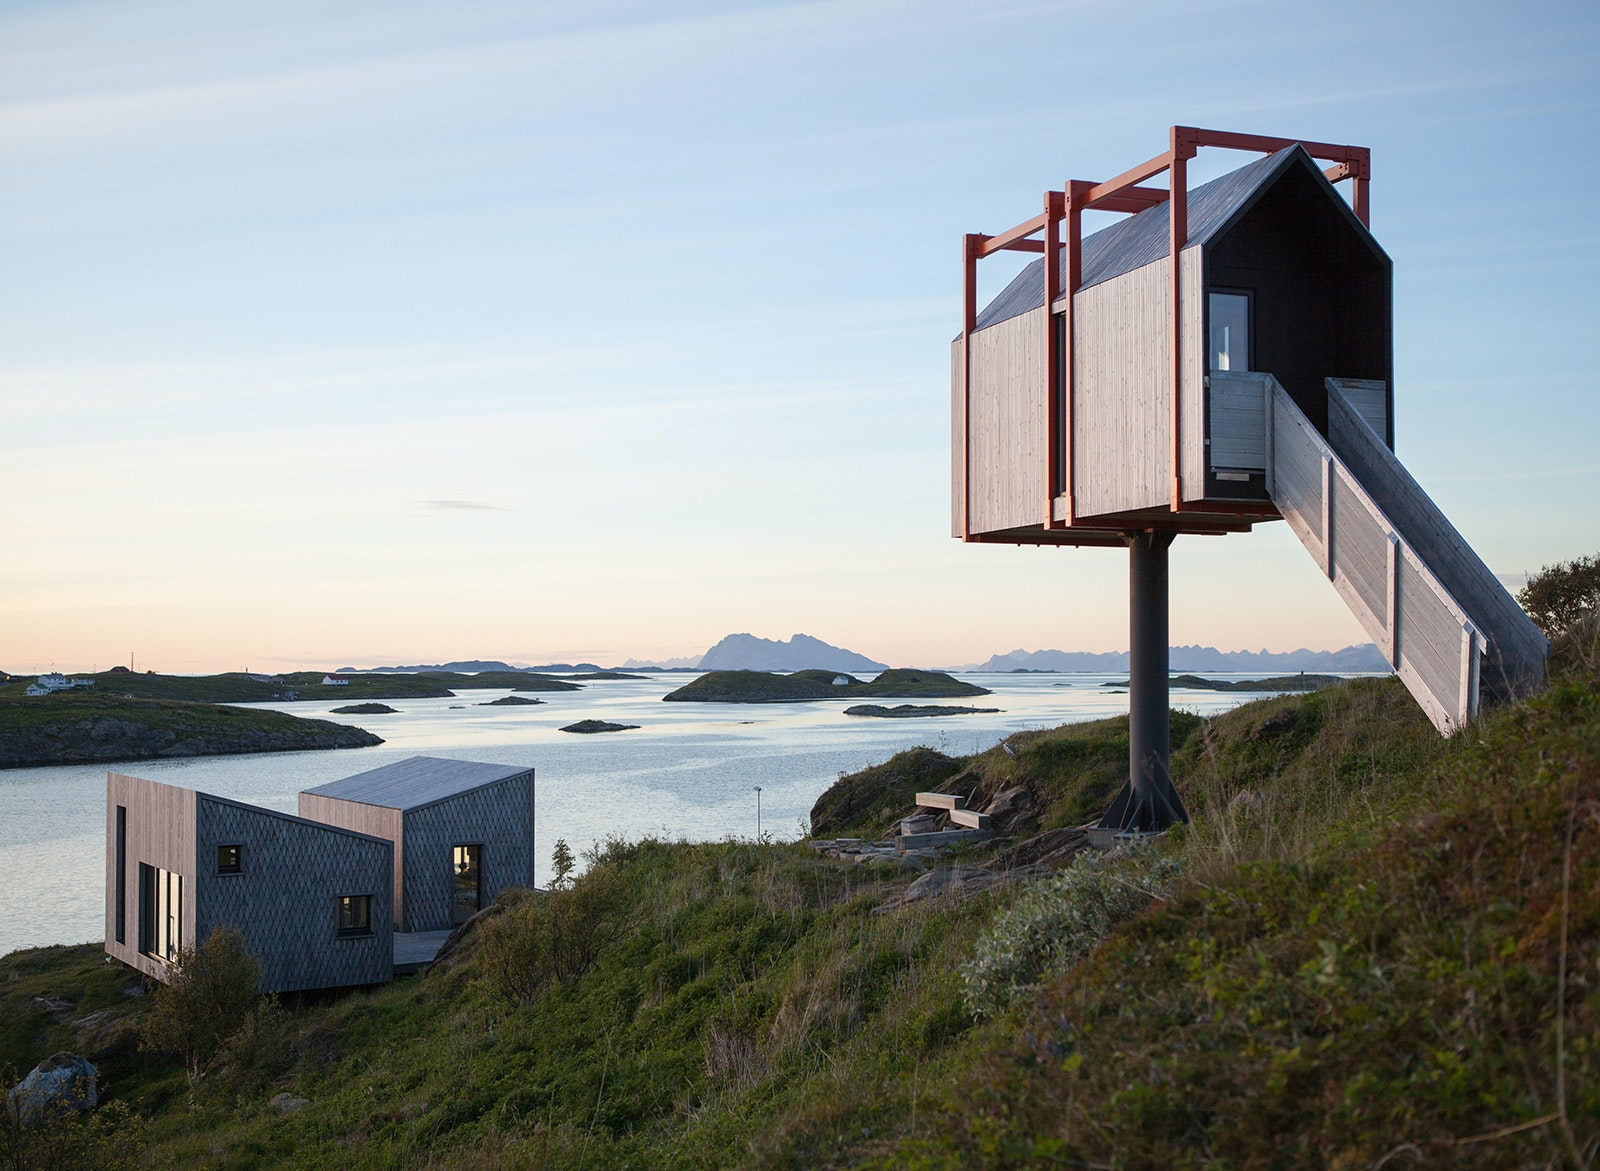 The Arctic Hideaway has nine cabins spread along a remote island in Norway.